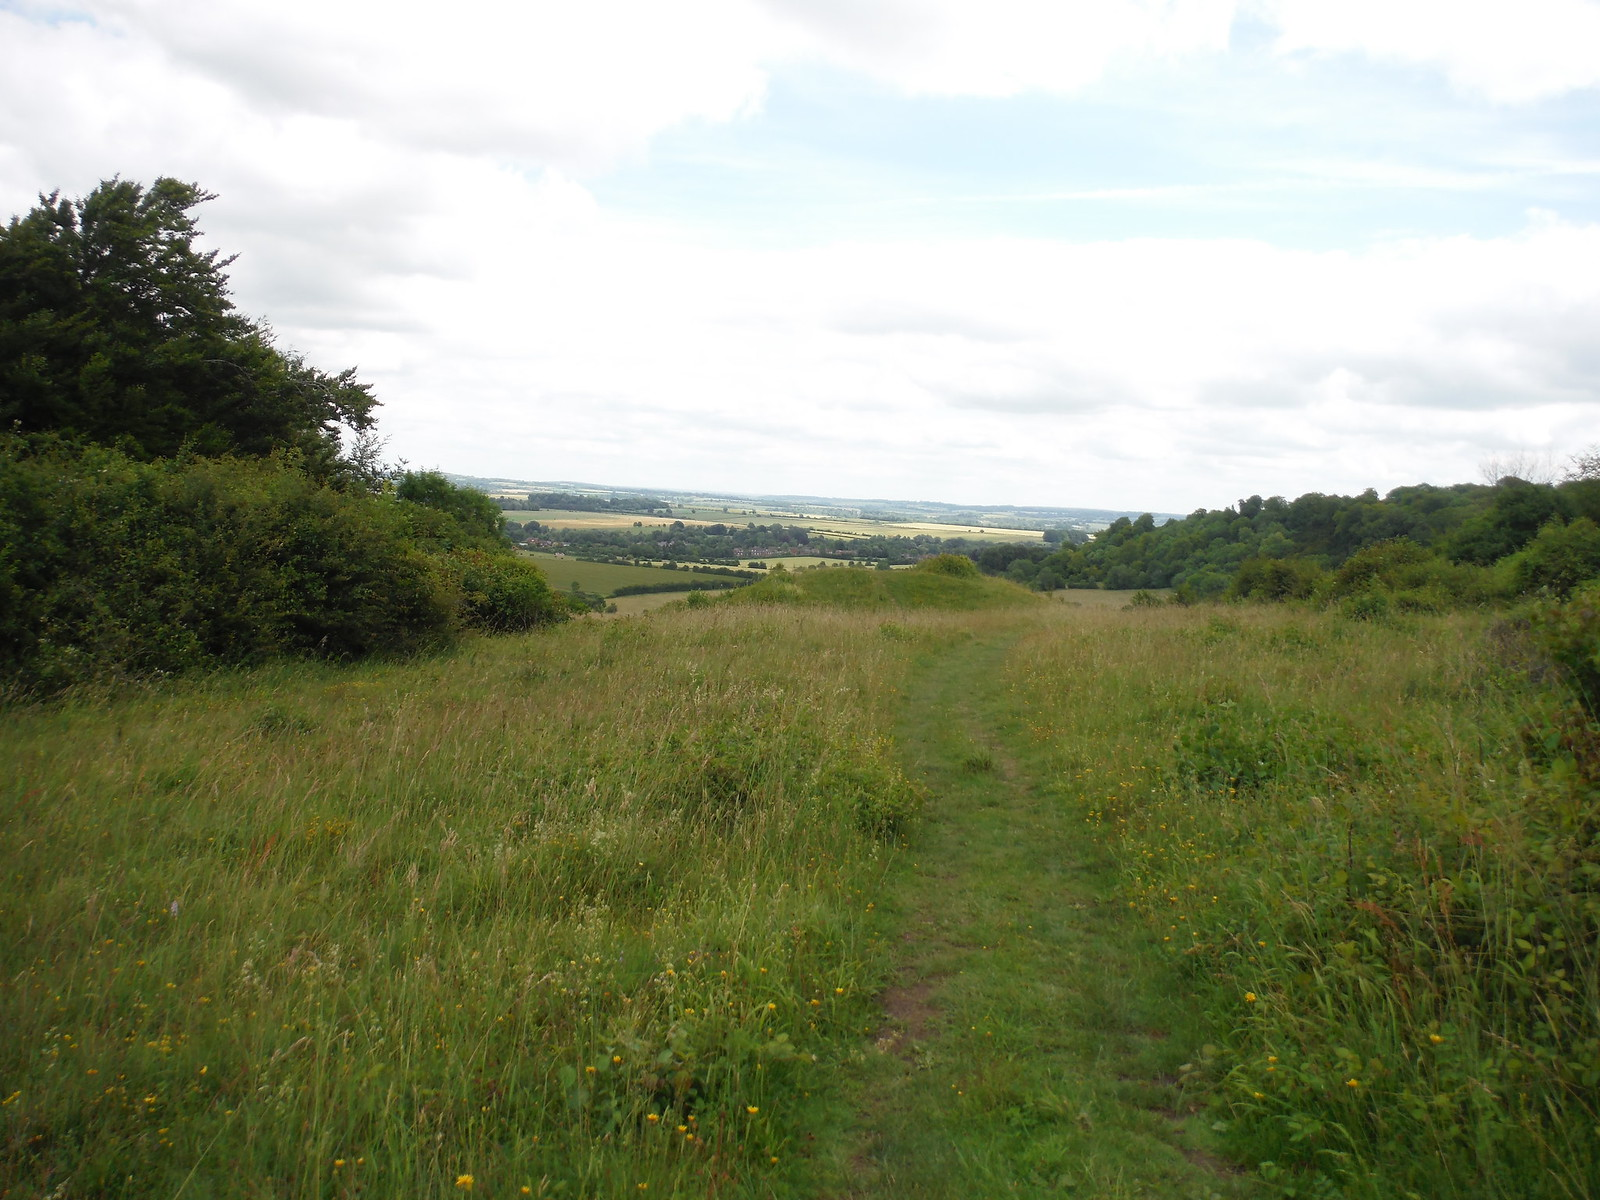 'Plum Pudding' Round Barrow and Wallop Brook Valley SWC Walk 265 - Dean to Mottisfont & Dunbridge